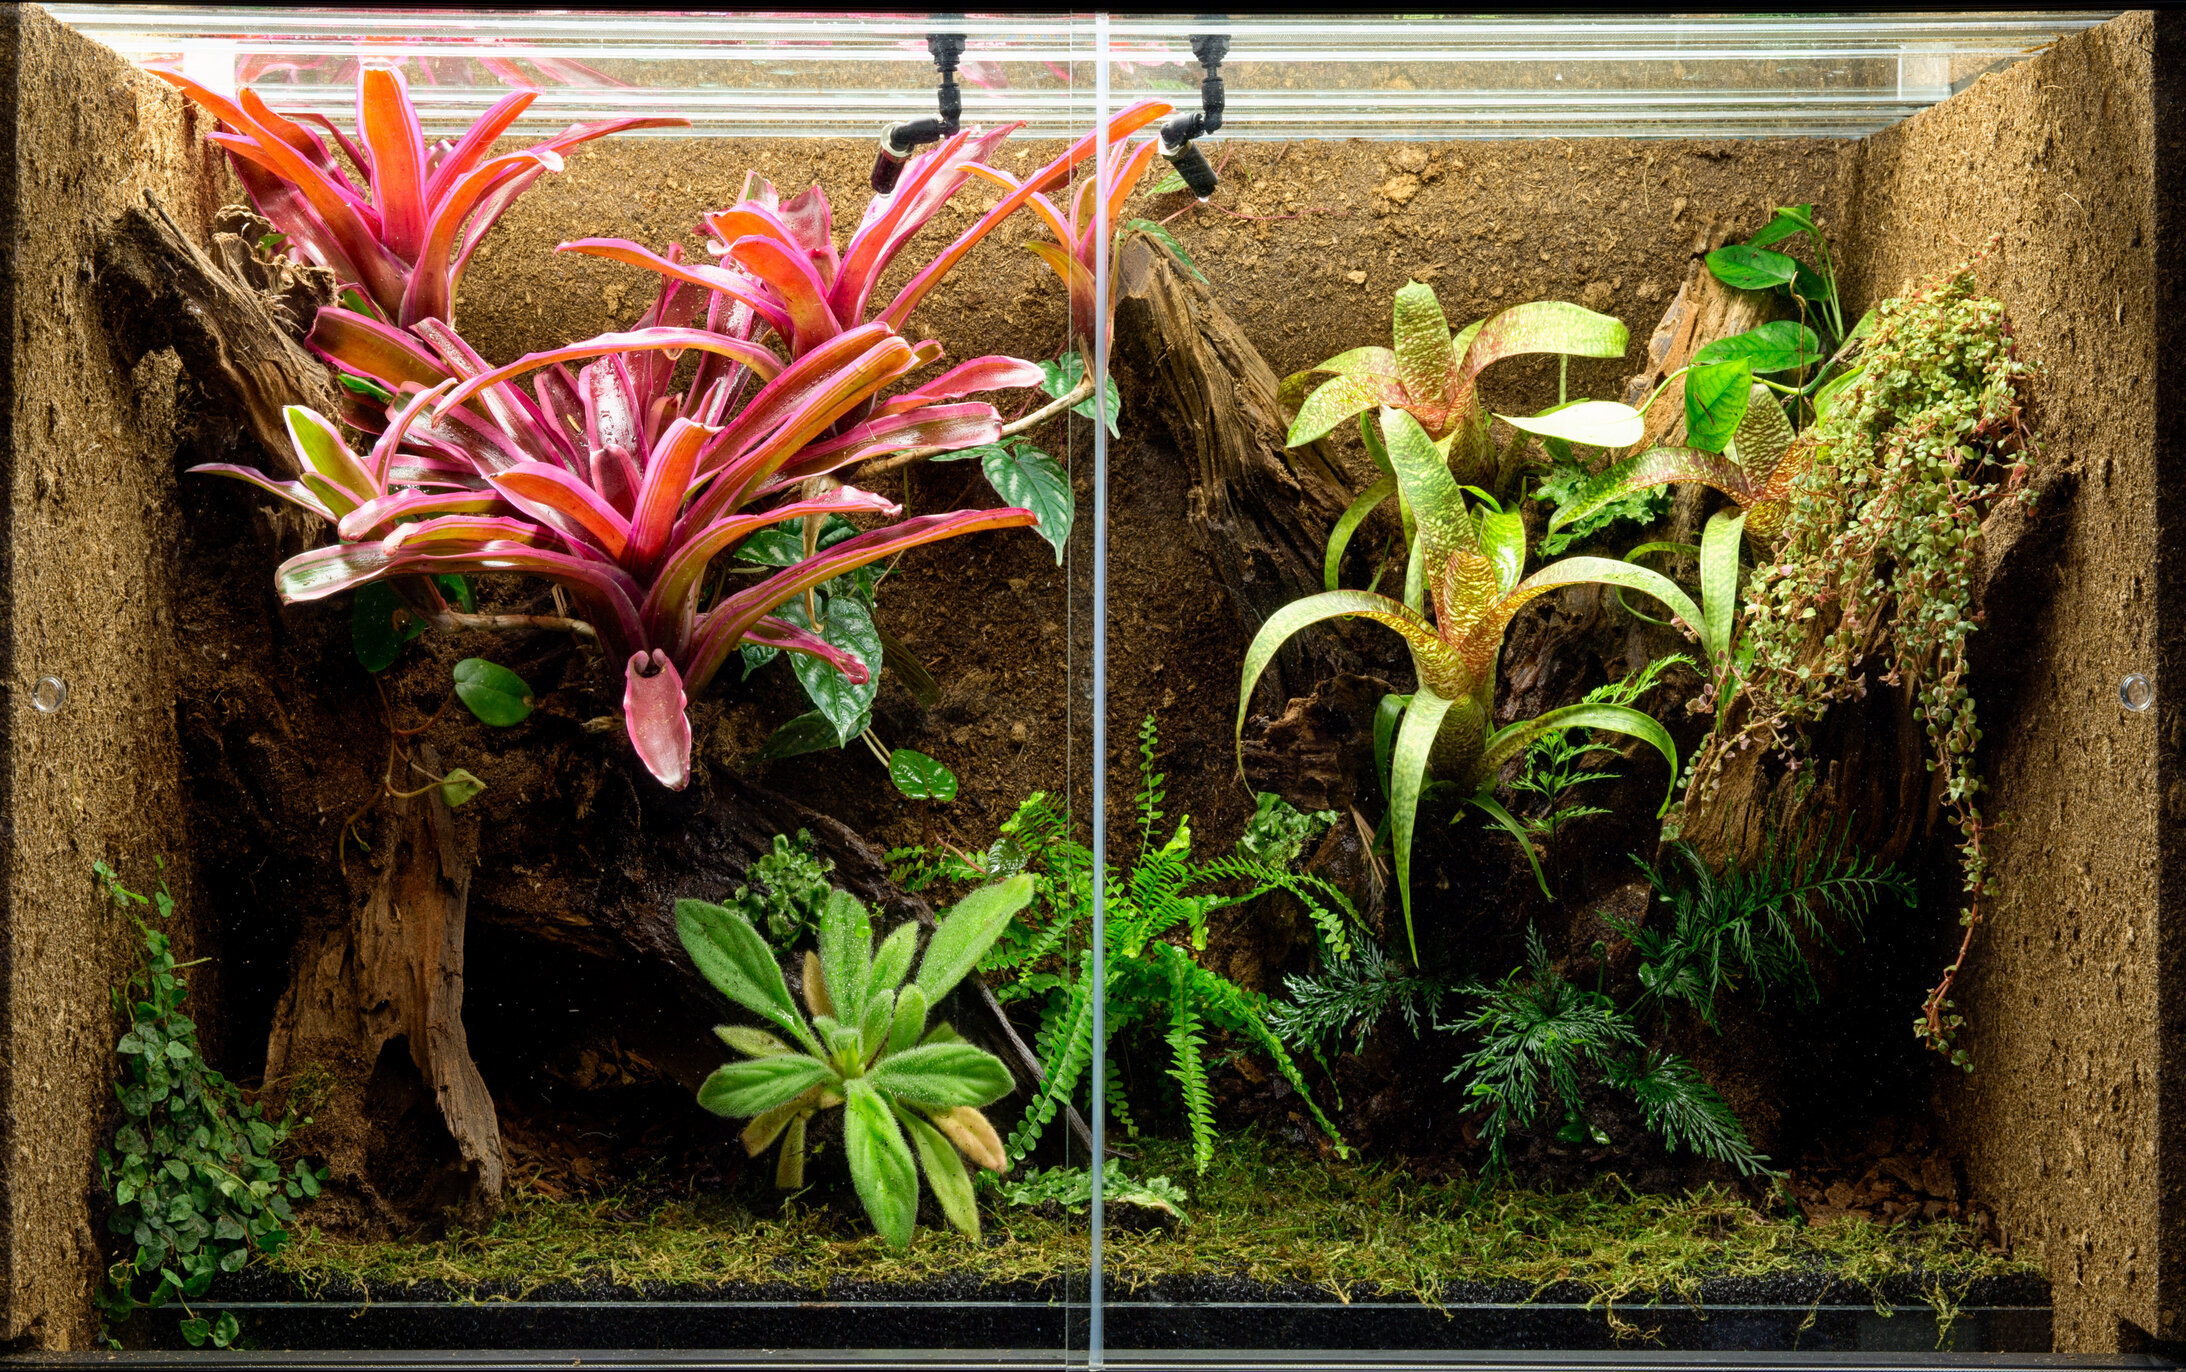 This enclosed terrarium is a self-sustaining environment. It should not need watering, but if you see condensation build up on the glass, it's time to open the roof and allow it to air out, drying out a bit.